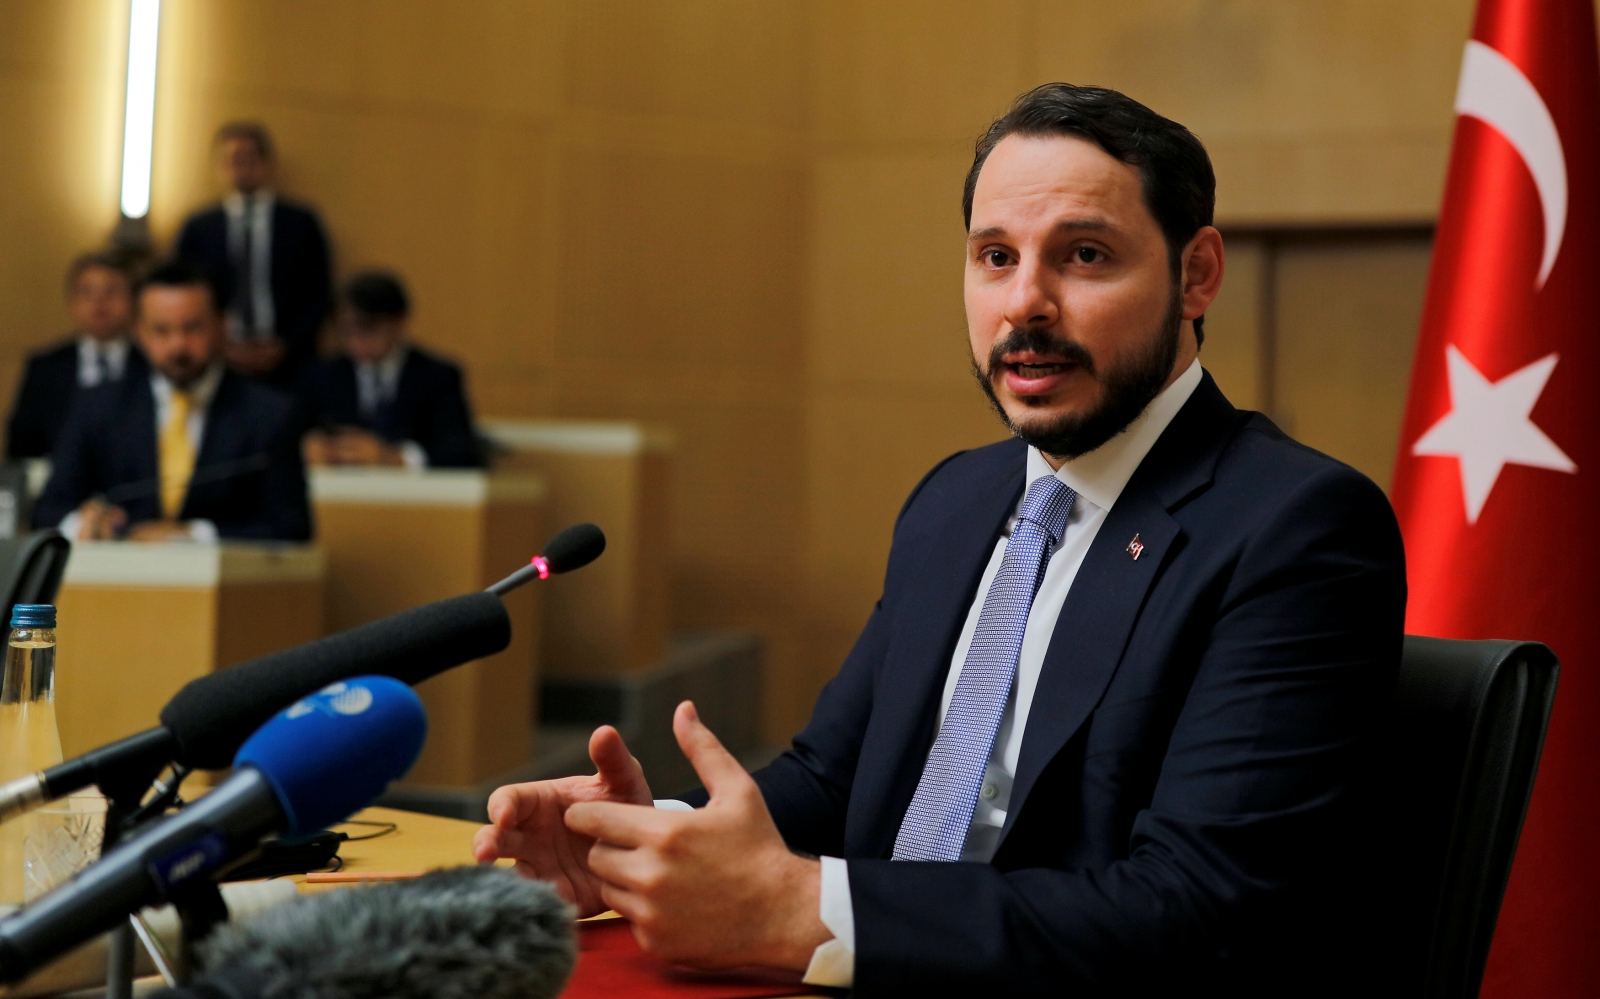 WikiLeaks releases over 57,000 personal emails from Erdogan's son-in-law Berat Albayrak